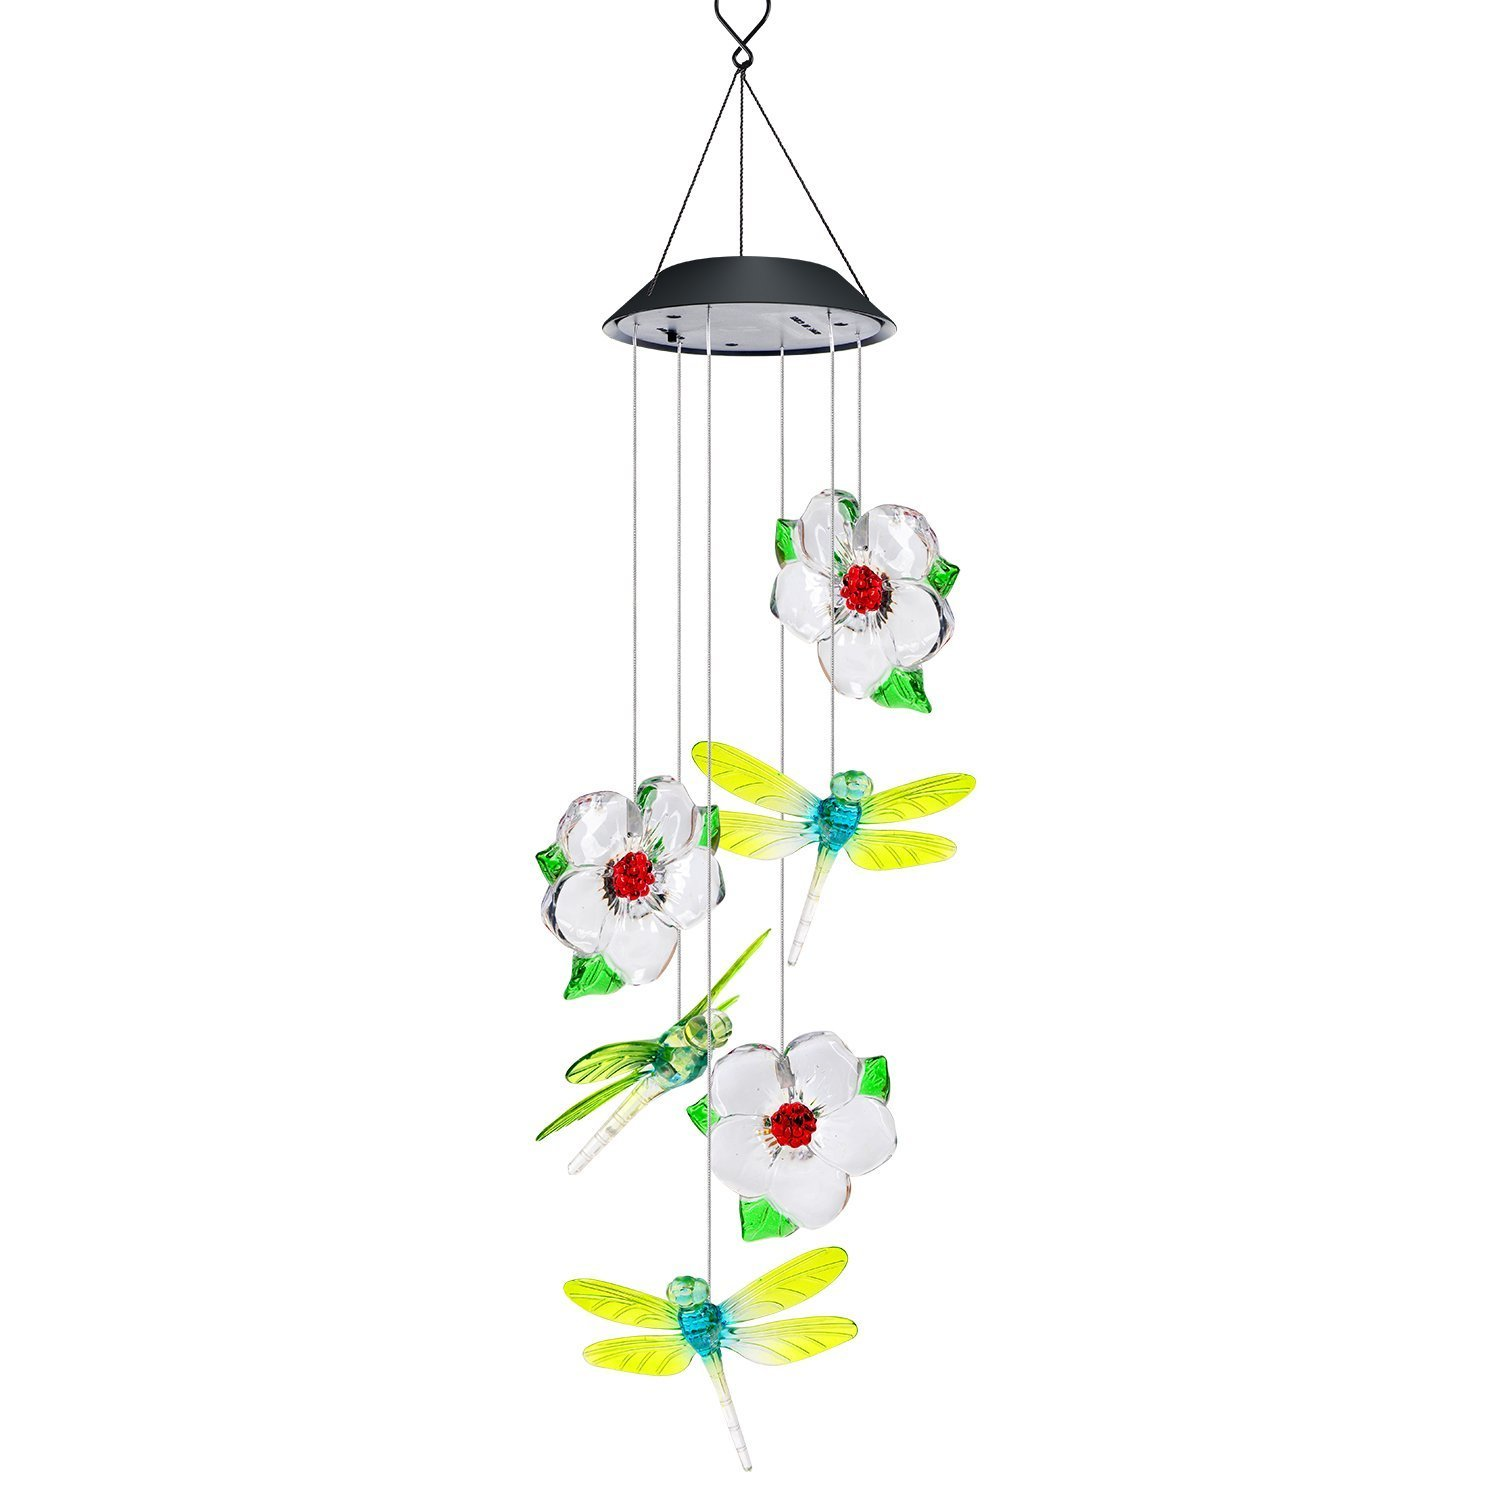 AVEKI Wind Chimes Outdoor, Solar Wind Chimes LED Color-Changing Hanging Lamp Waterproof Solar Powered Wind Chimes for Indoor Outdoor Garden Patio Decoration (Dragonfly)